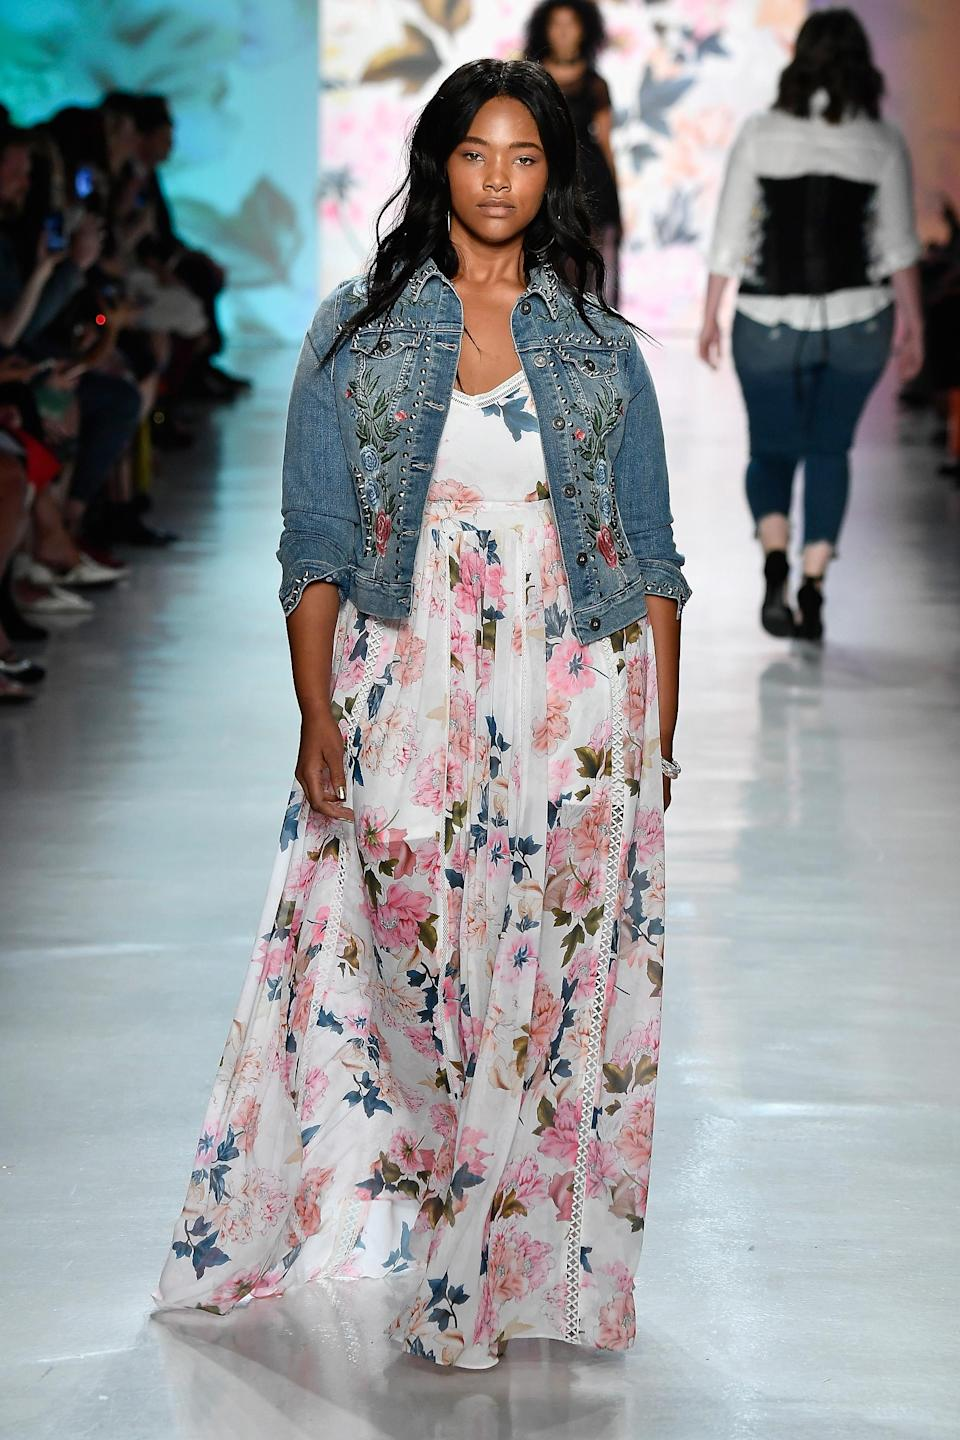 A model sports an embroidered denim jacket and a floral dress at the Torrid show during NYFW. (Photo: Getty Images)